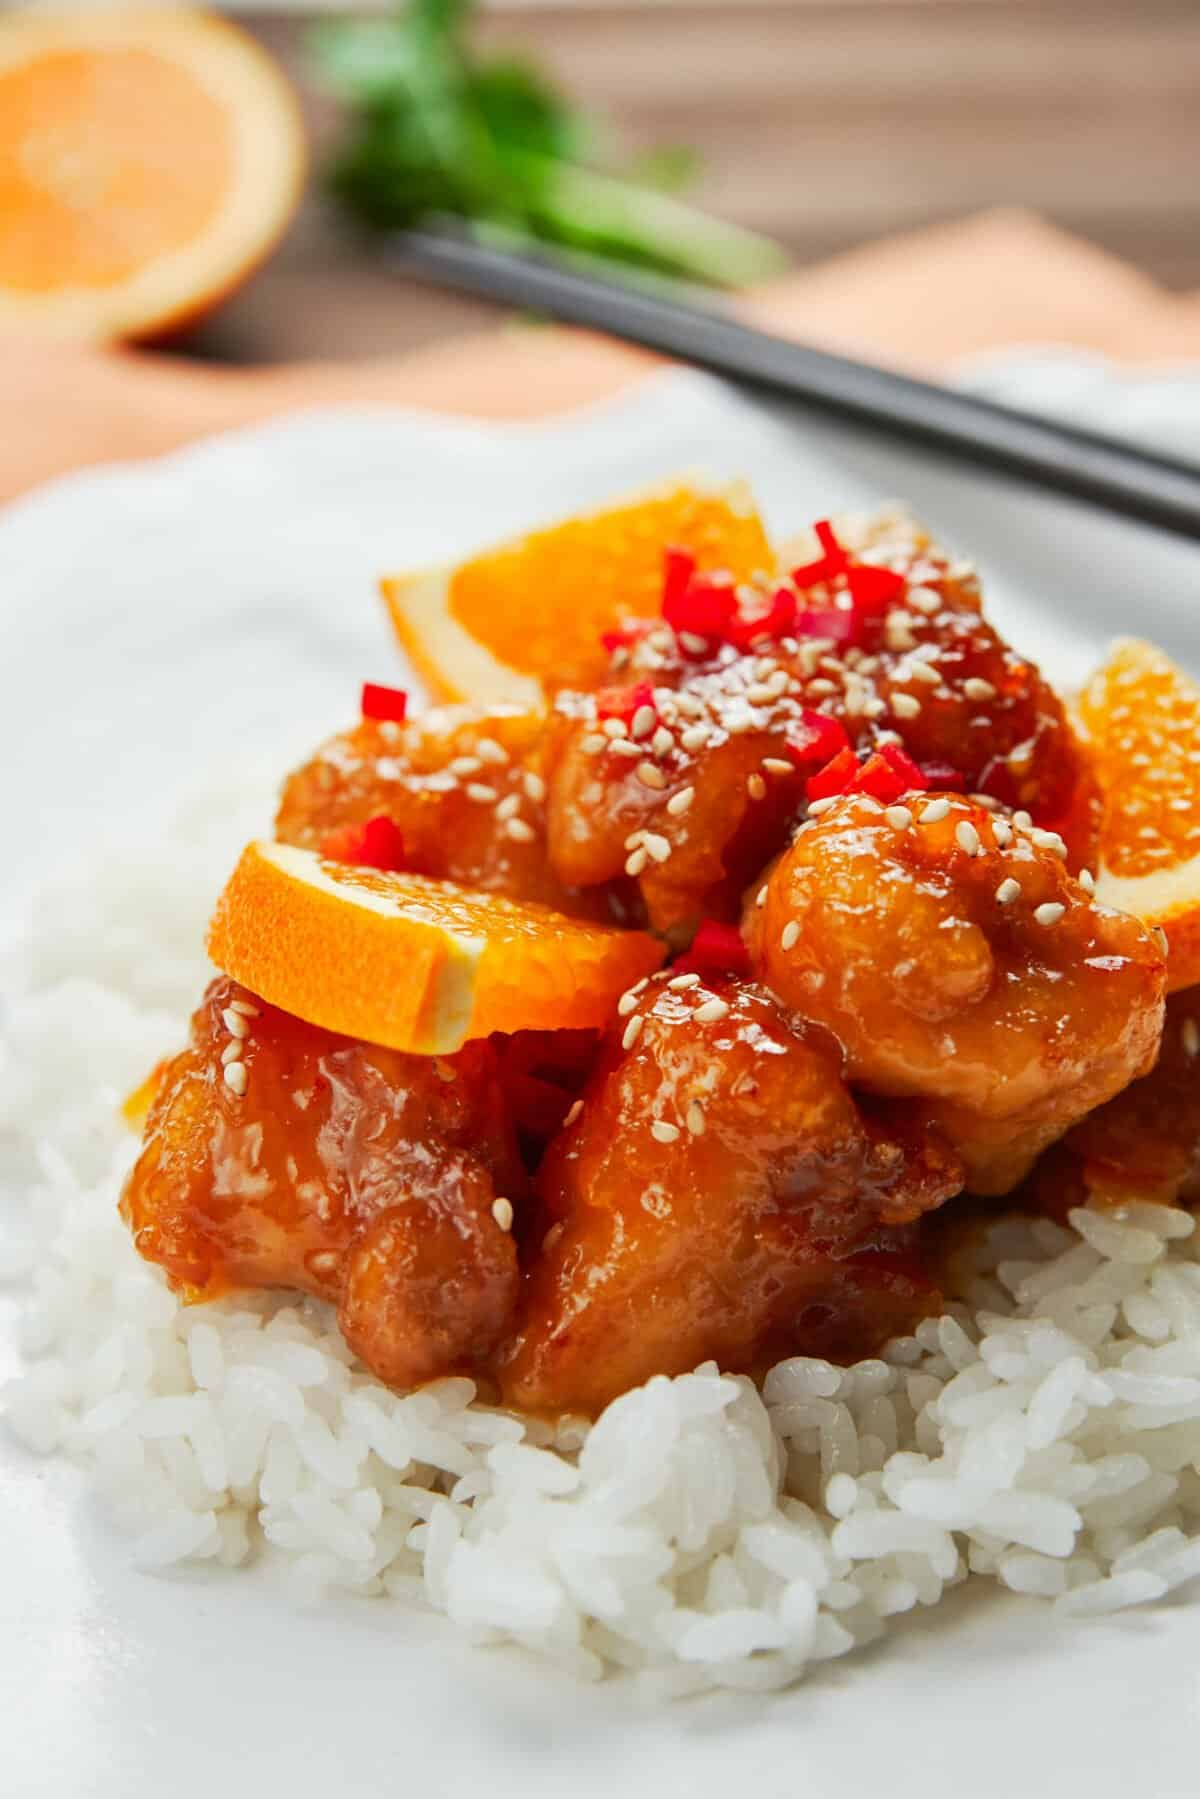 Crisp juicy fried chicken glazed in a sweet and sour orange sauce that's redolent of fresh citrus thanks to a triple dose of orange.